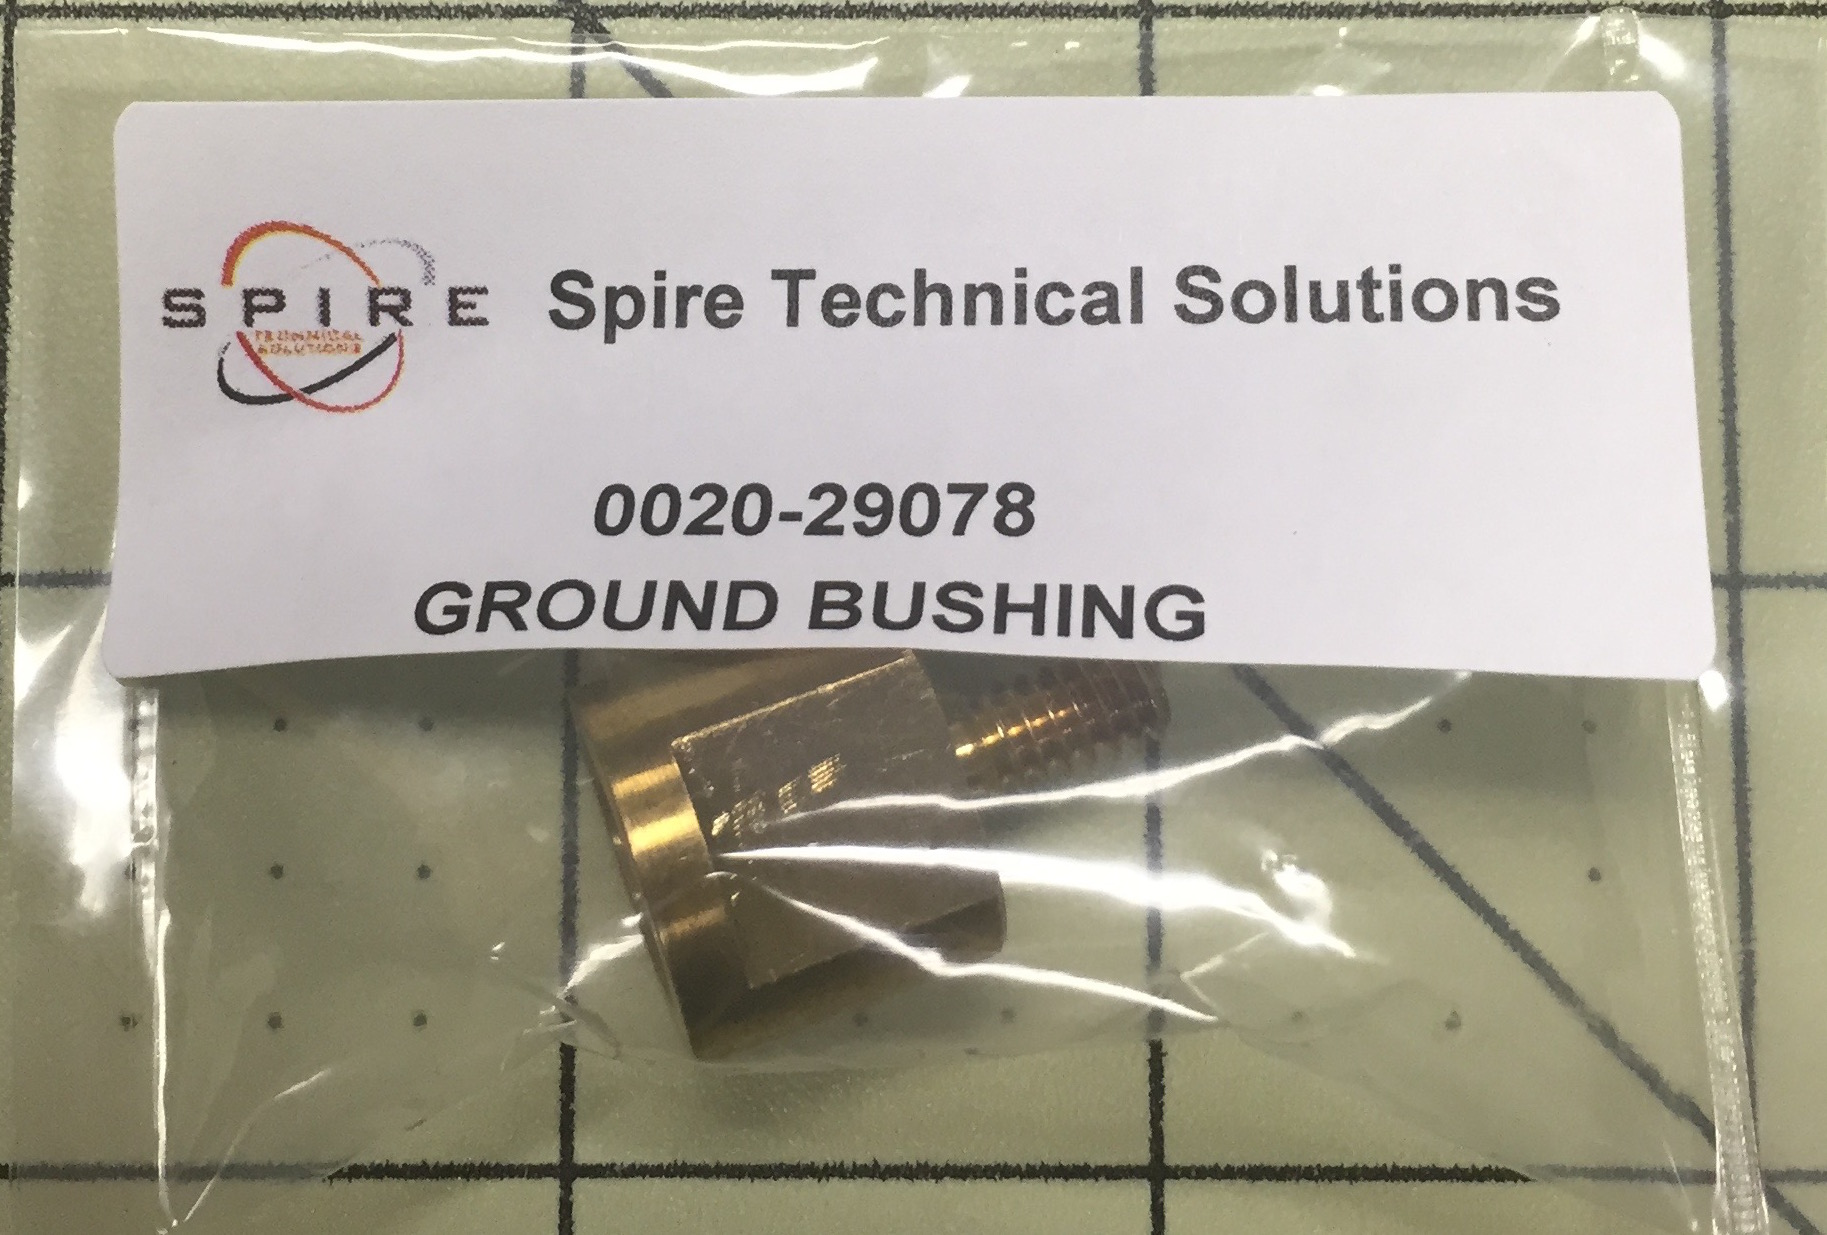 Ground Bushing